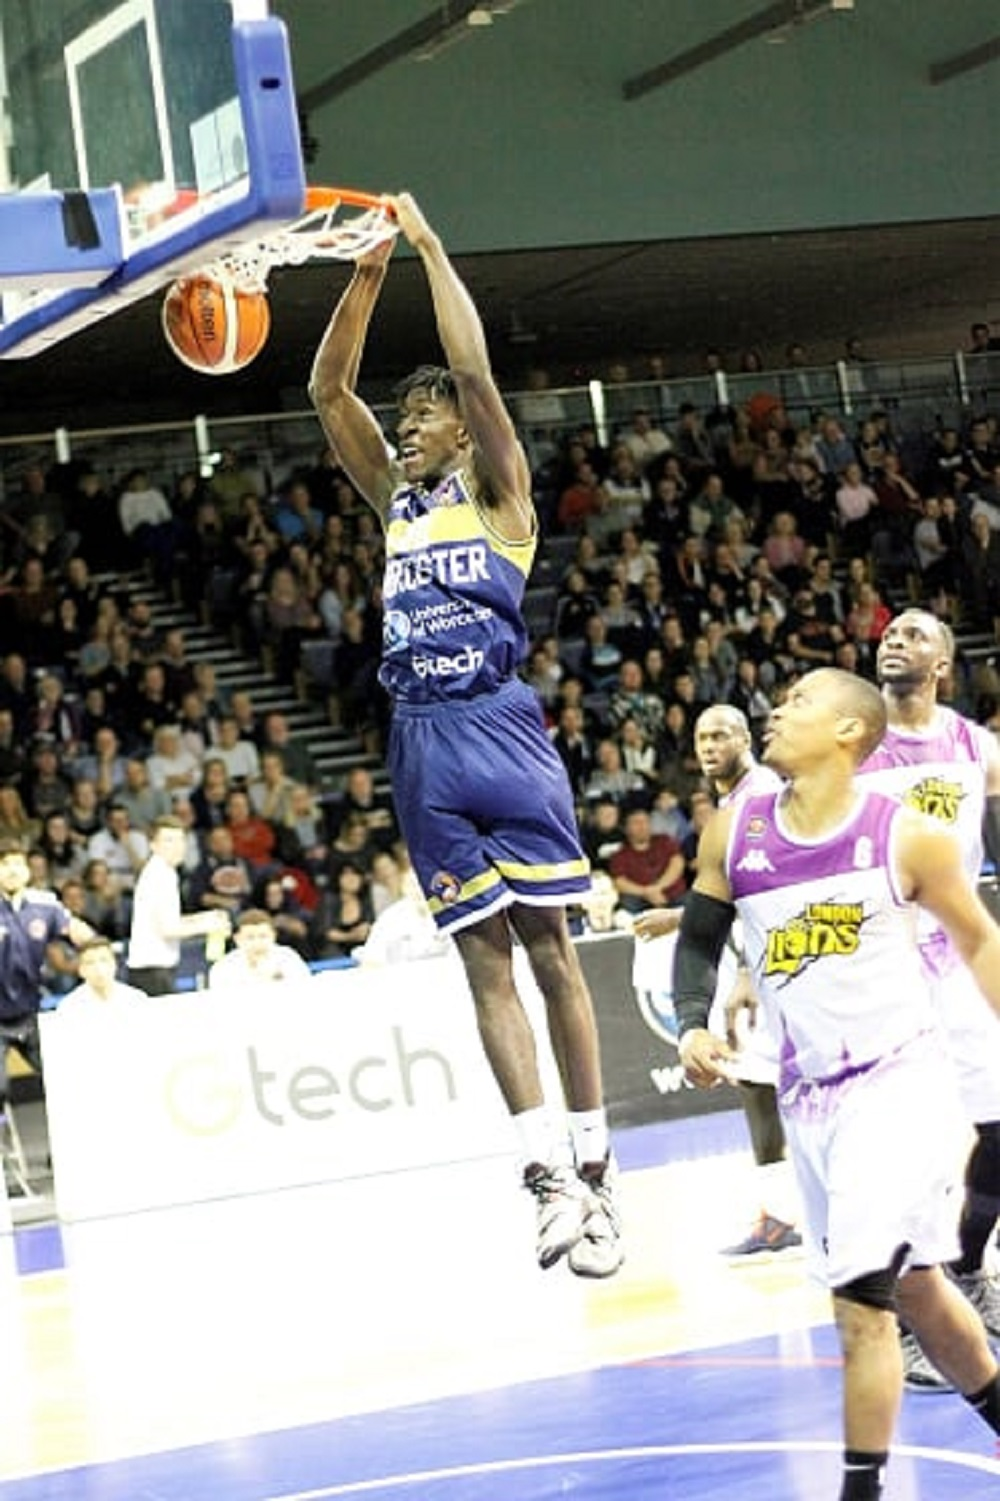 Daniel Johnson-Thompson enjoying life after late start with Worcester Wolves